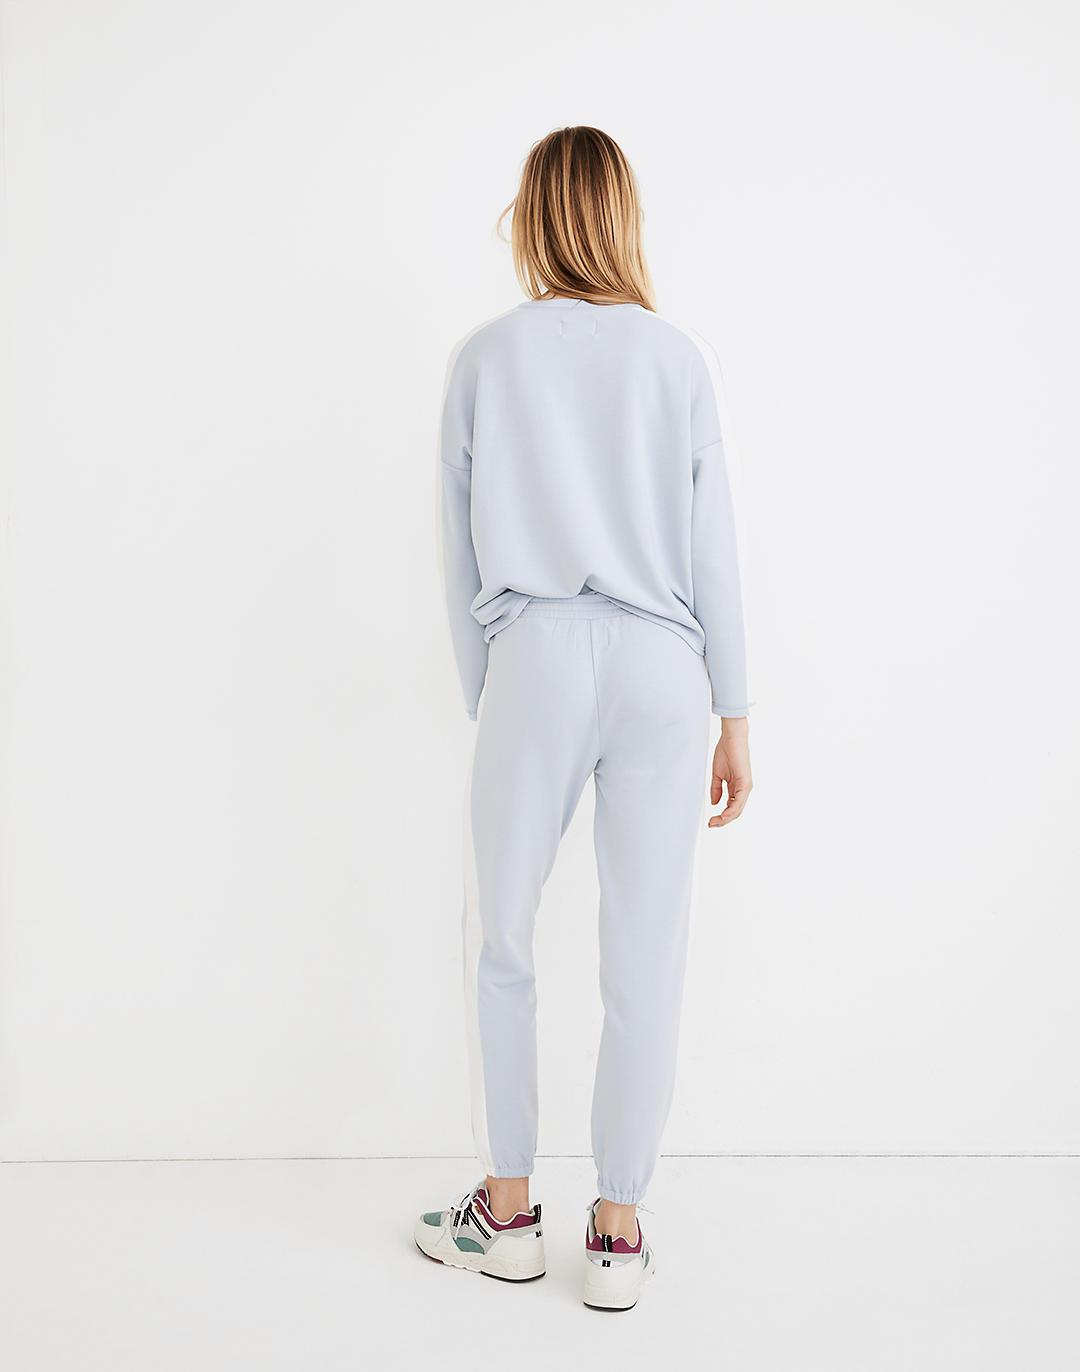 MWL Superbrushed Inset Easygoing Sweatpants 2